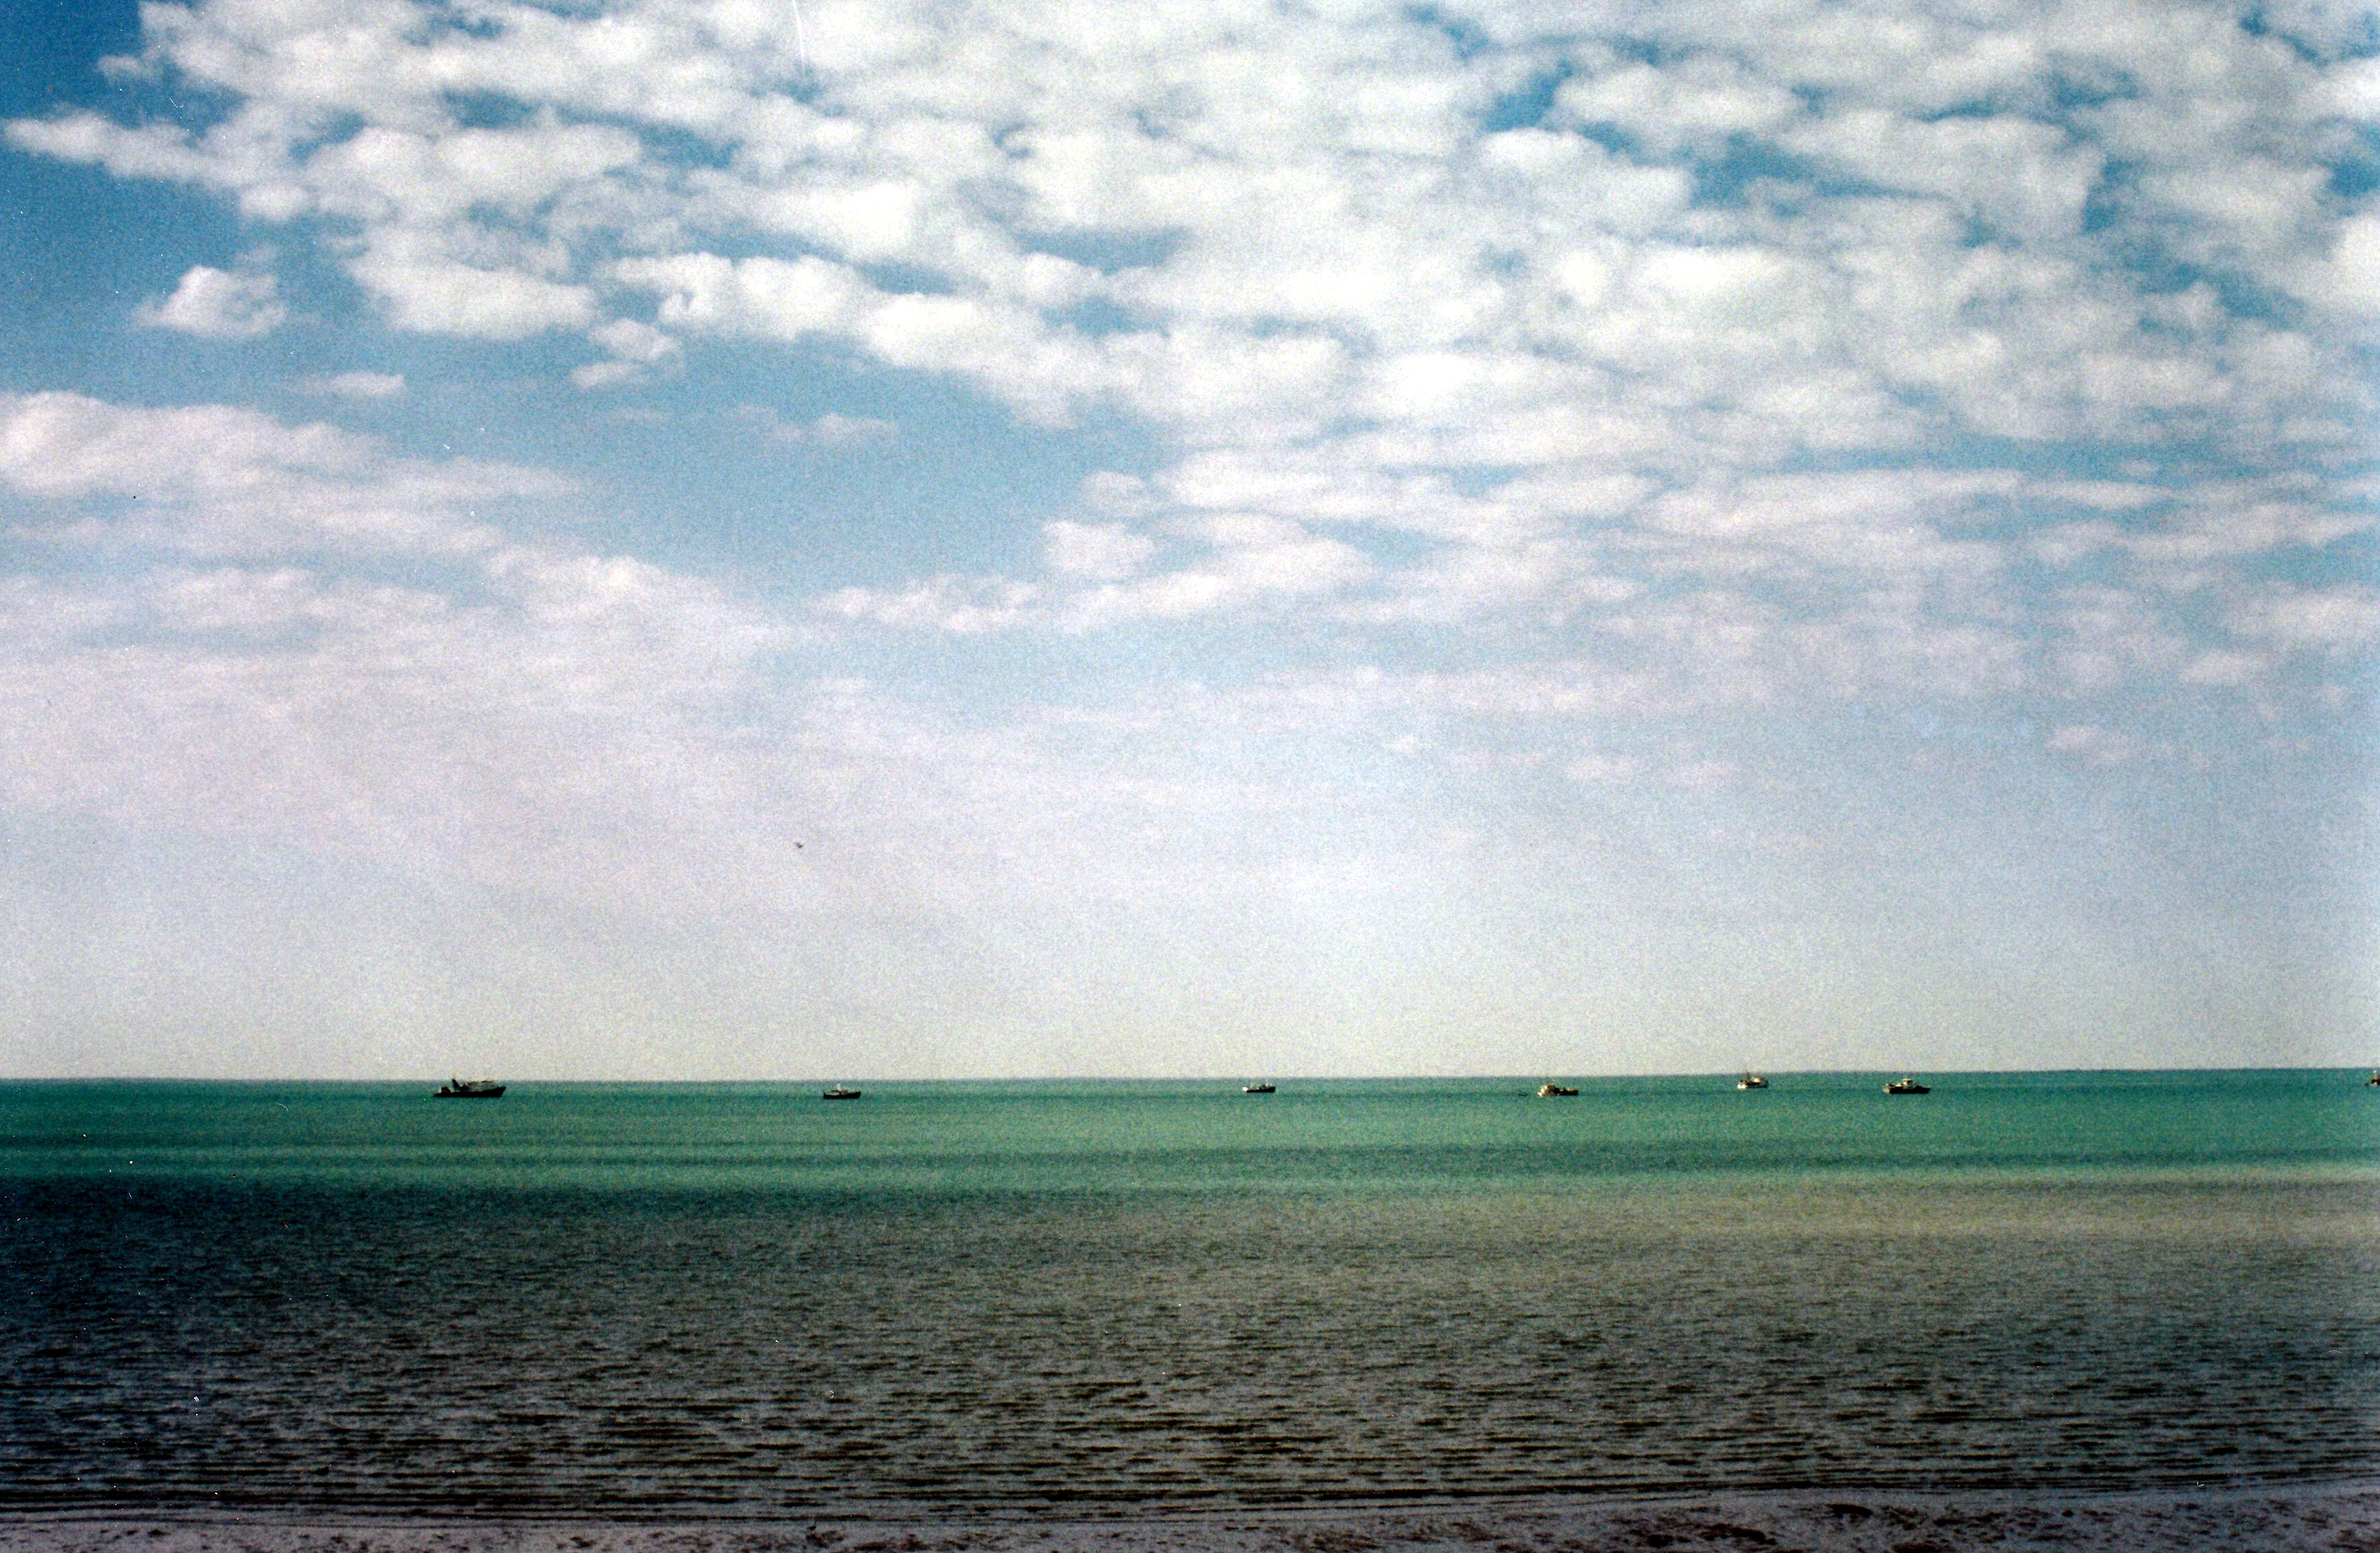 08-20-2000 Roebuck Bay Broome.jpg